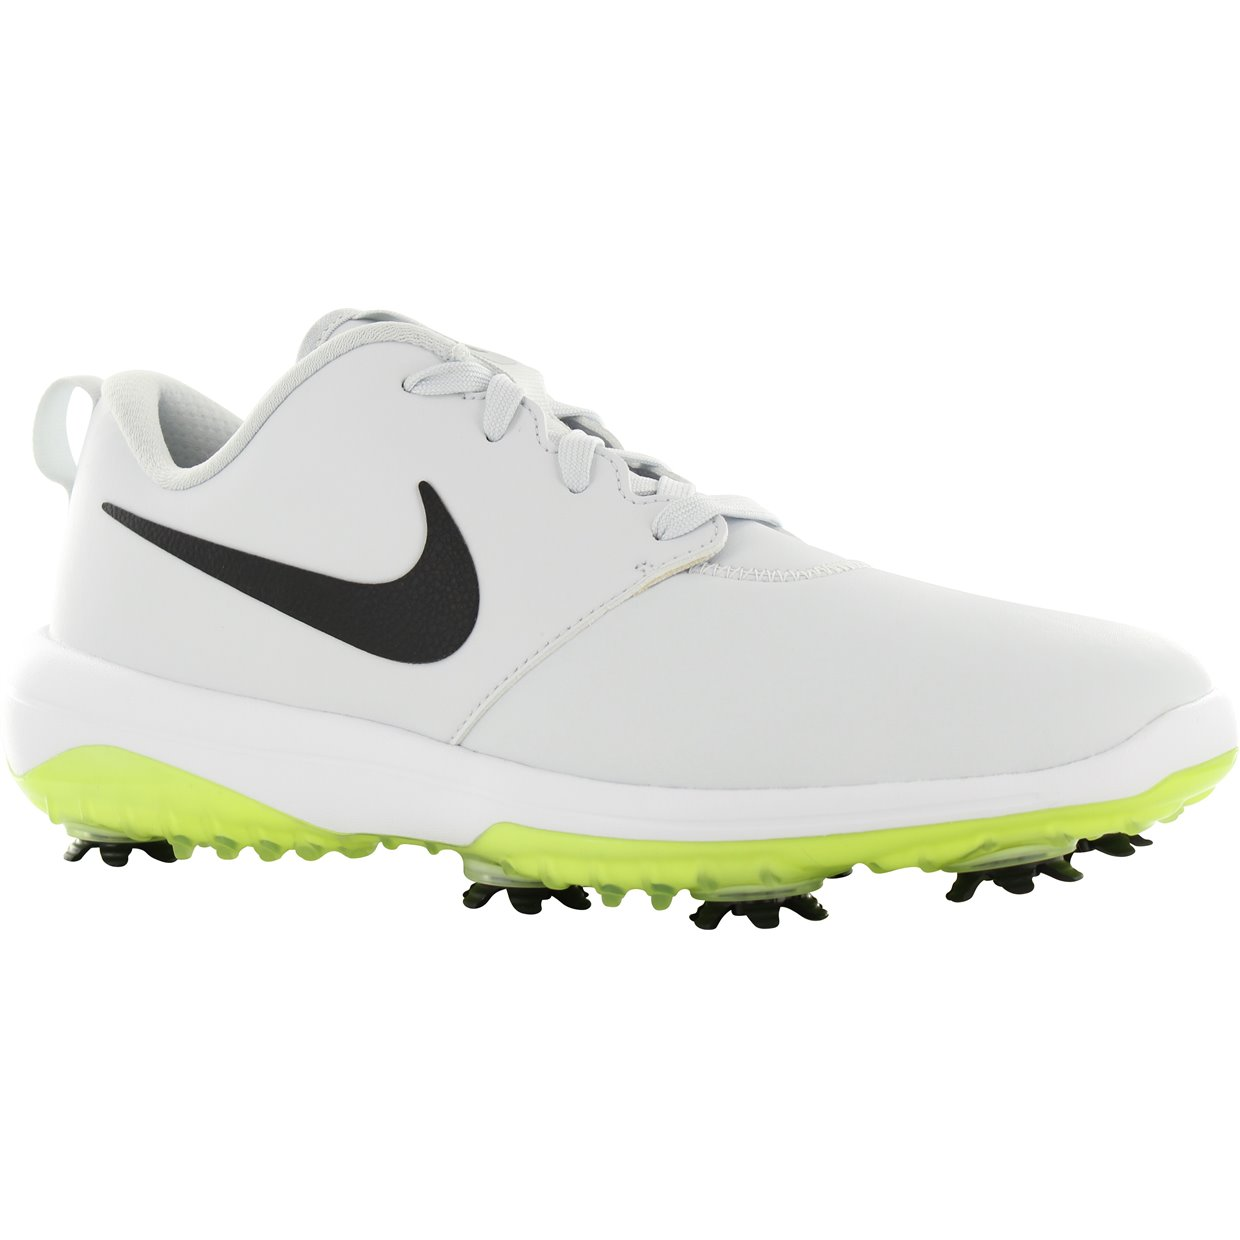 3a7c77ad1344a Nike Roshe G Tour Golf Shoes